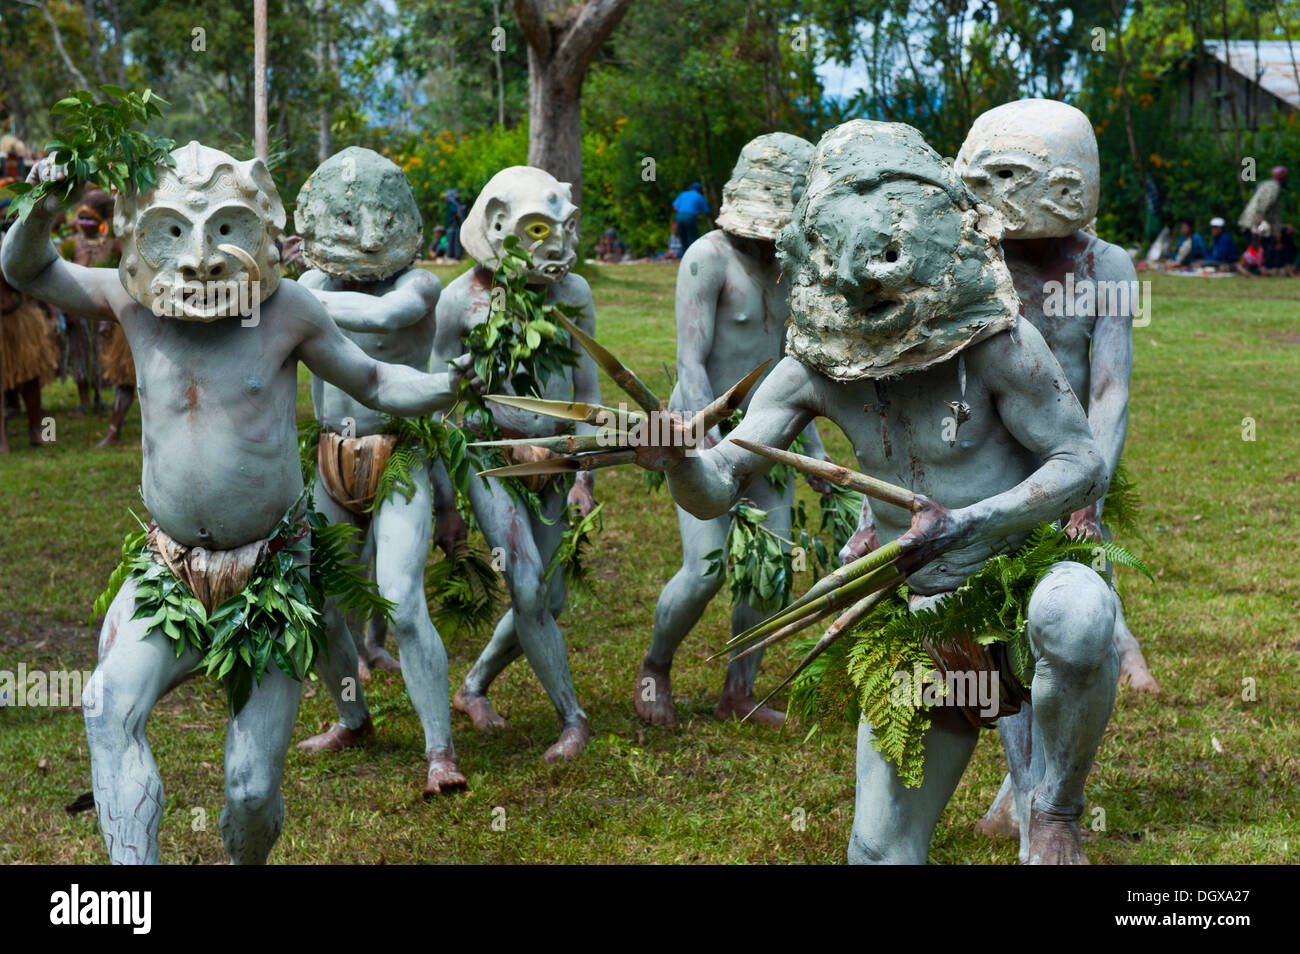 Tribal members in masks and full body paint are celebrating at the traditional Sing Sing gathering in the highlands, Paya - Stock Image